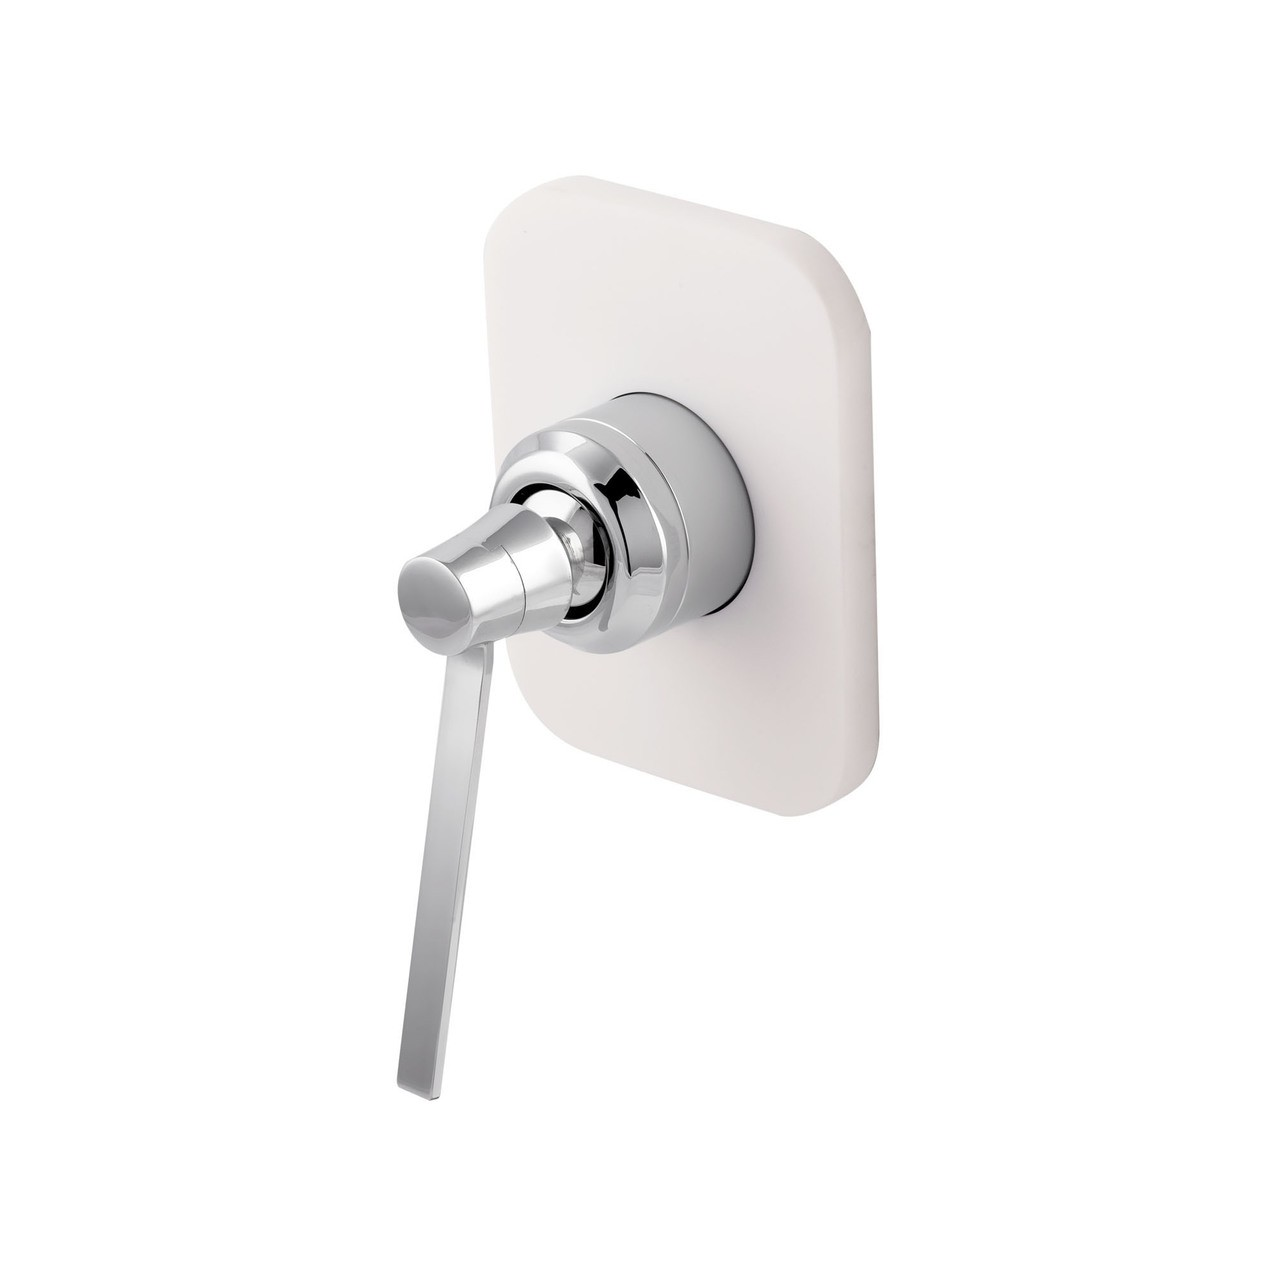 Concealed Shower Mixer Seve Glacier White